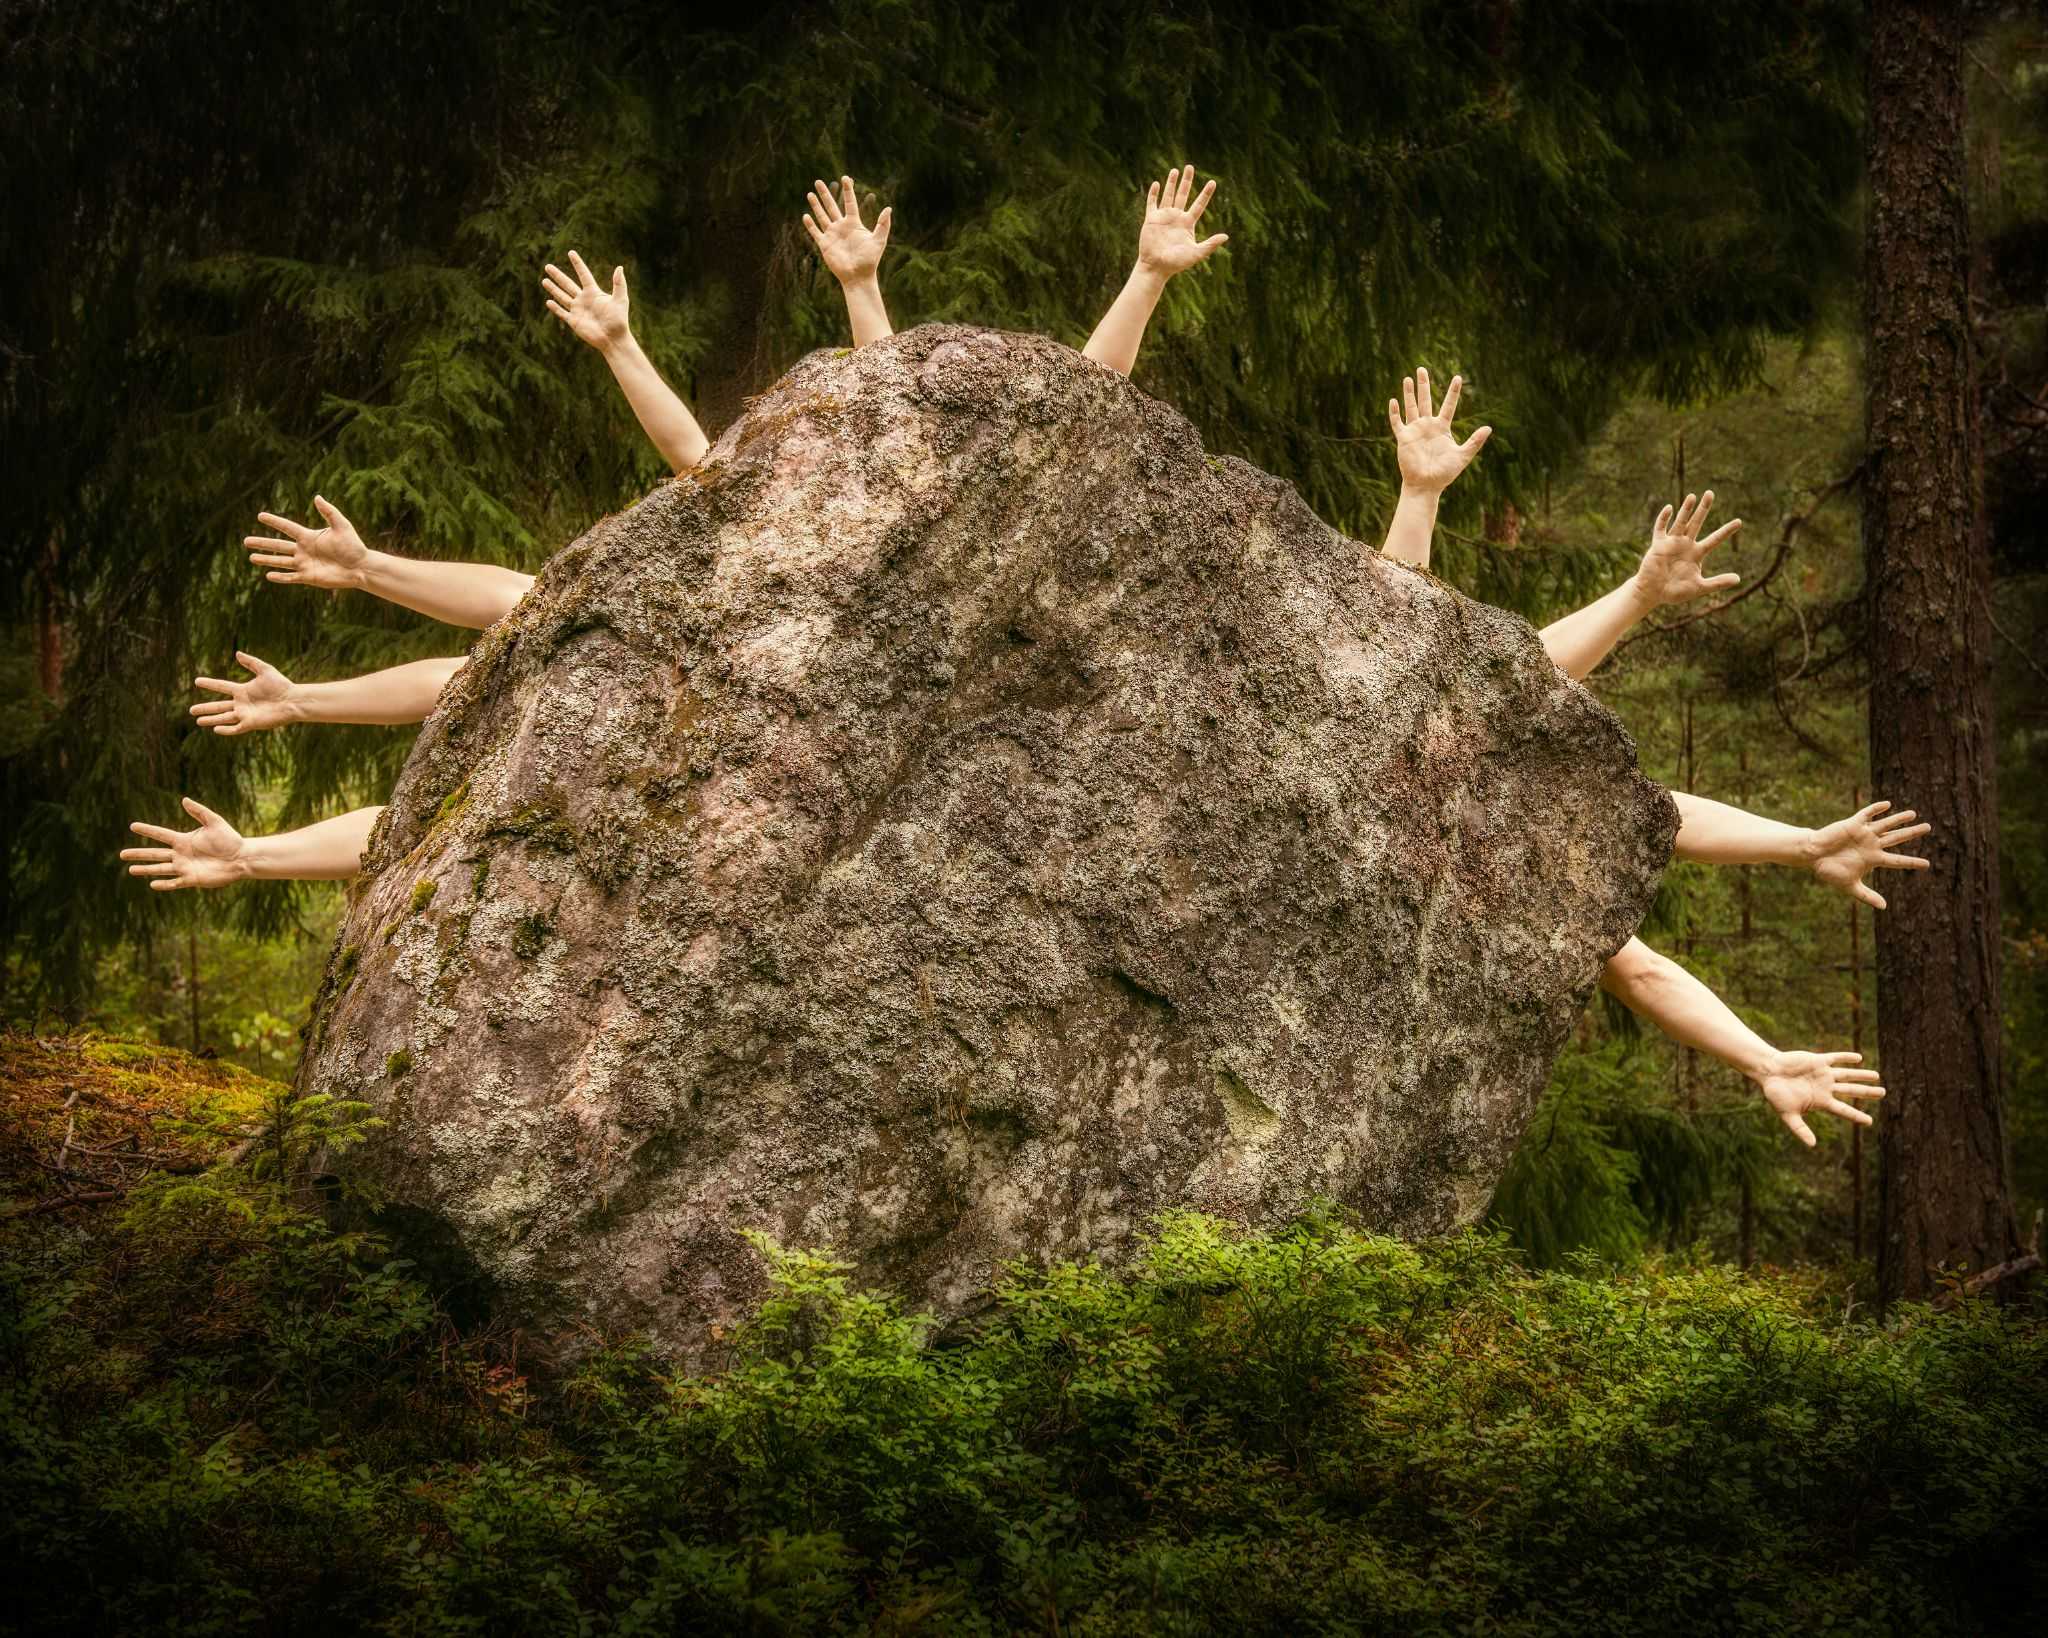 Behind The Stone They All Gathered by Petri Damstén